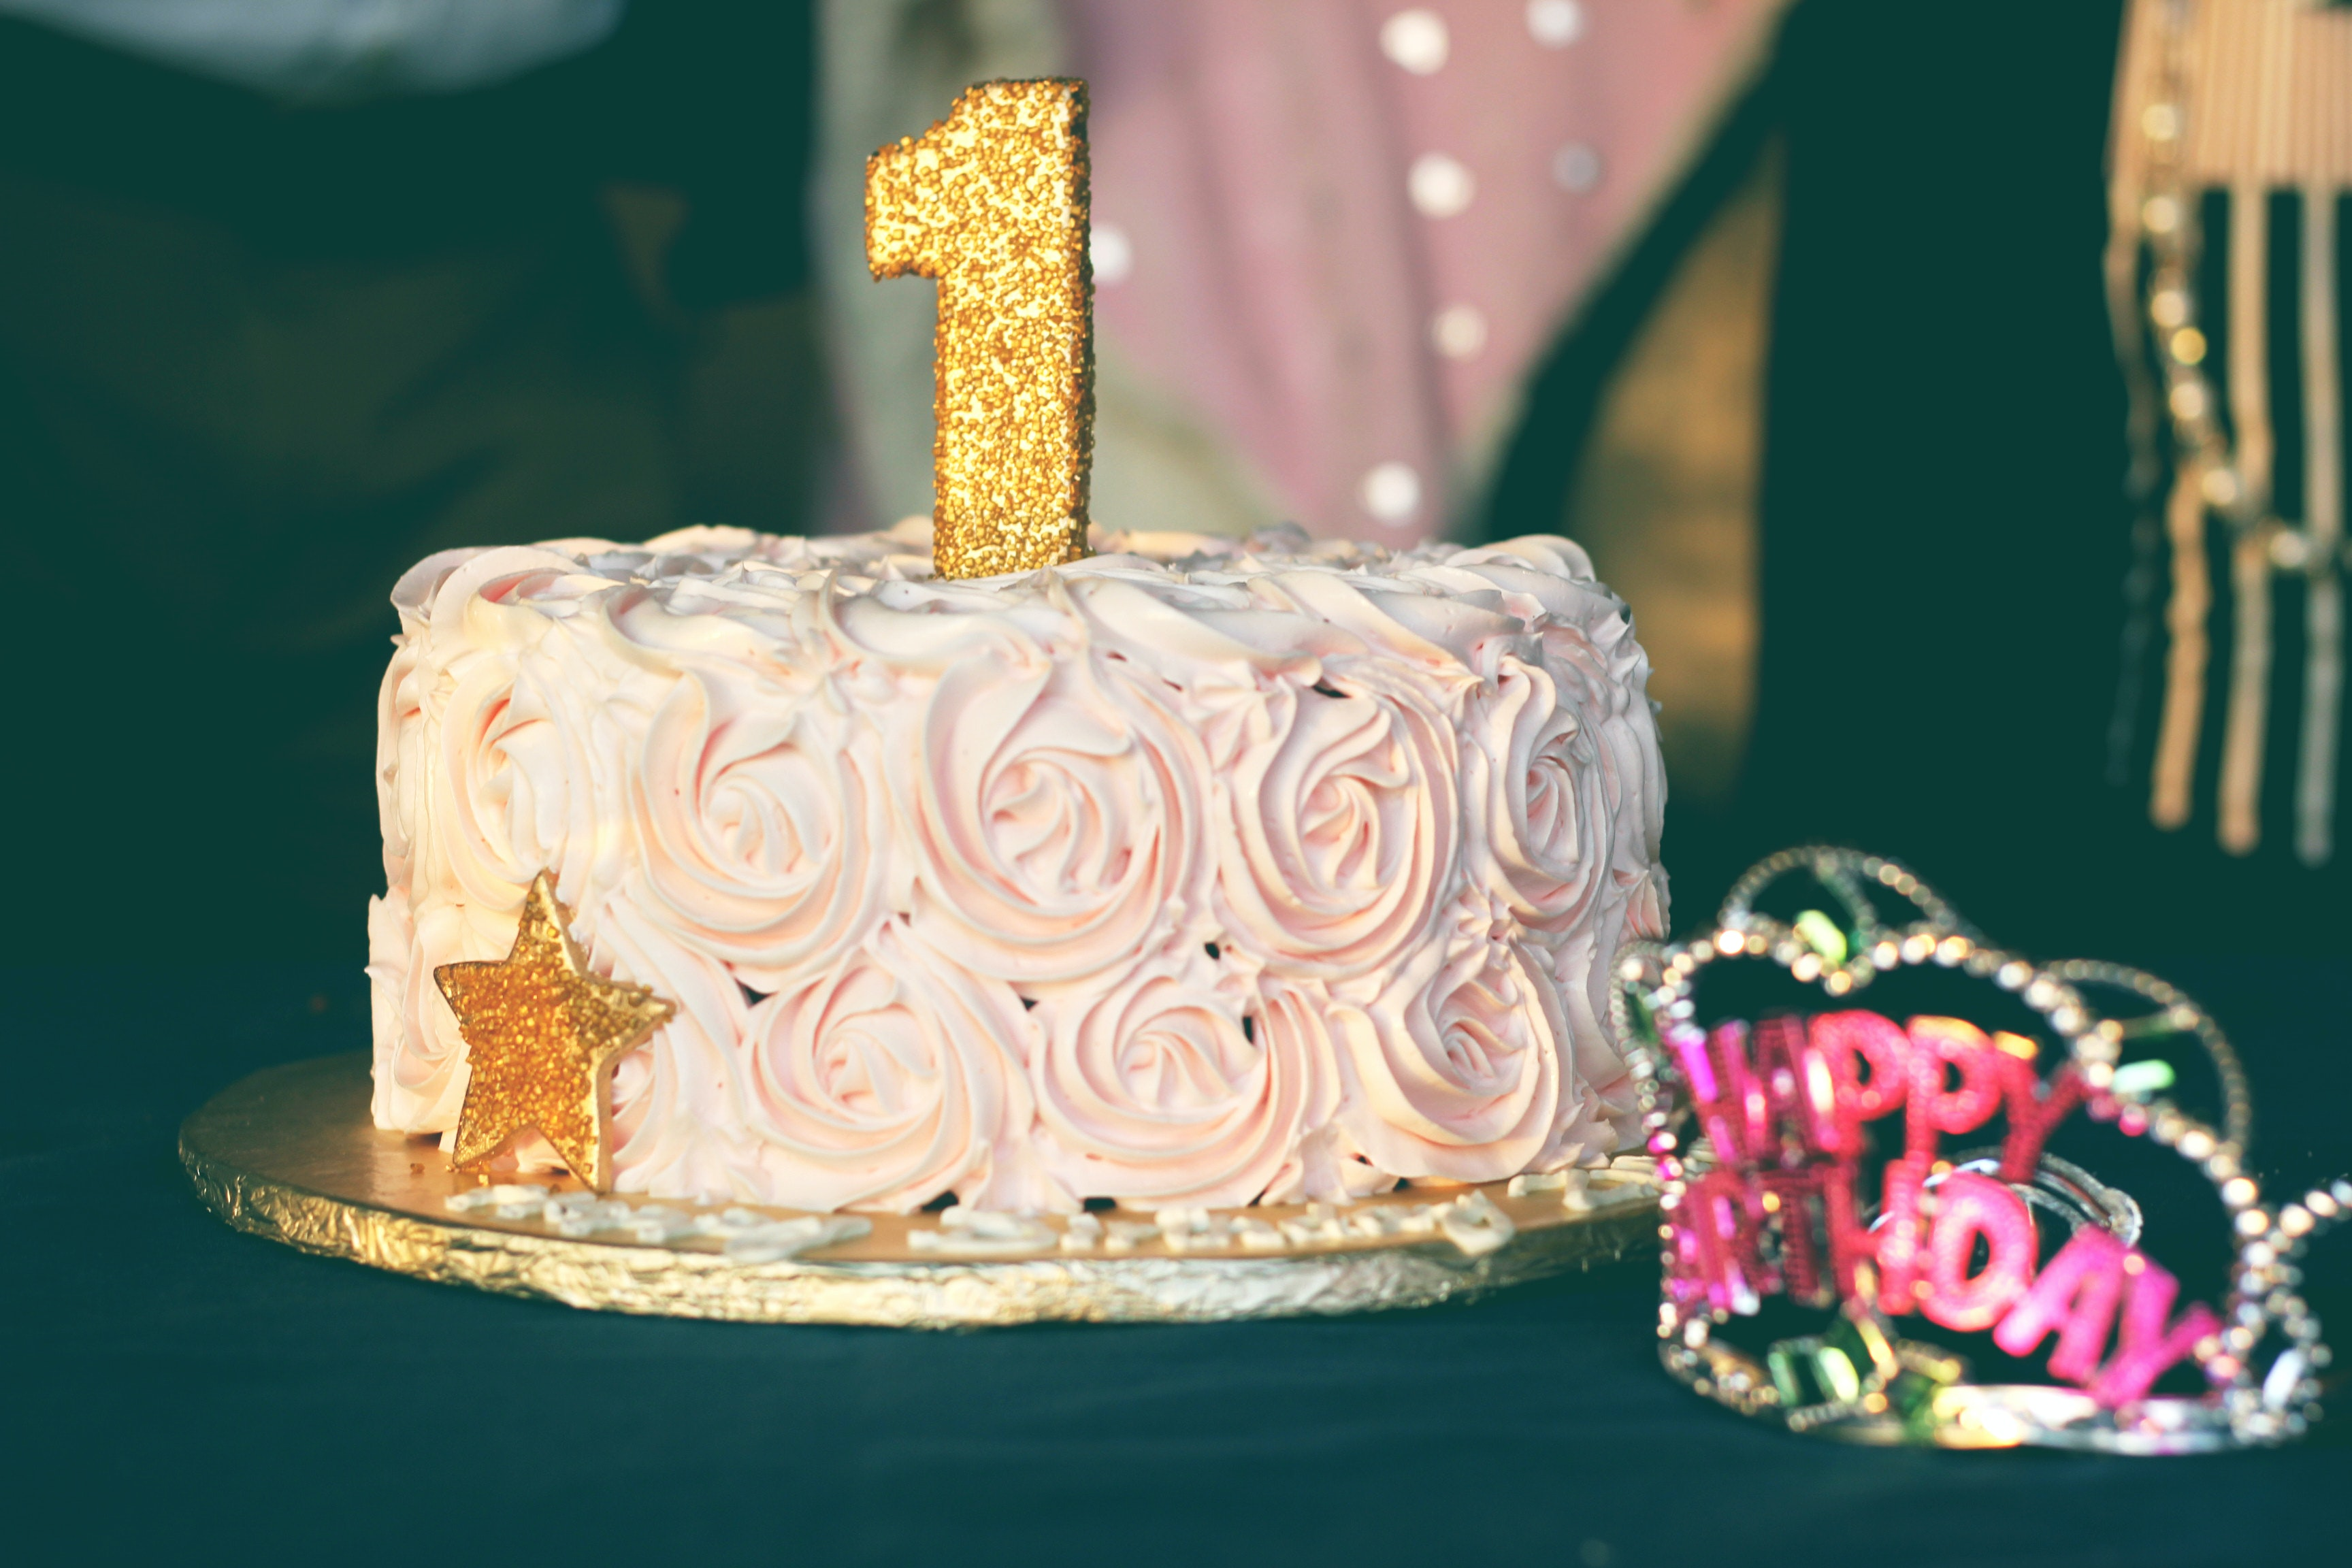 250 Amazing Birthday Cake Photos Pexels Free Stock Photos